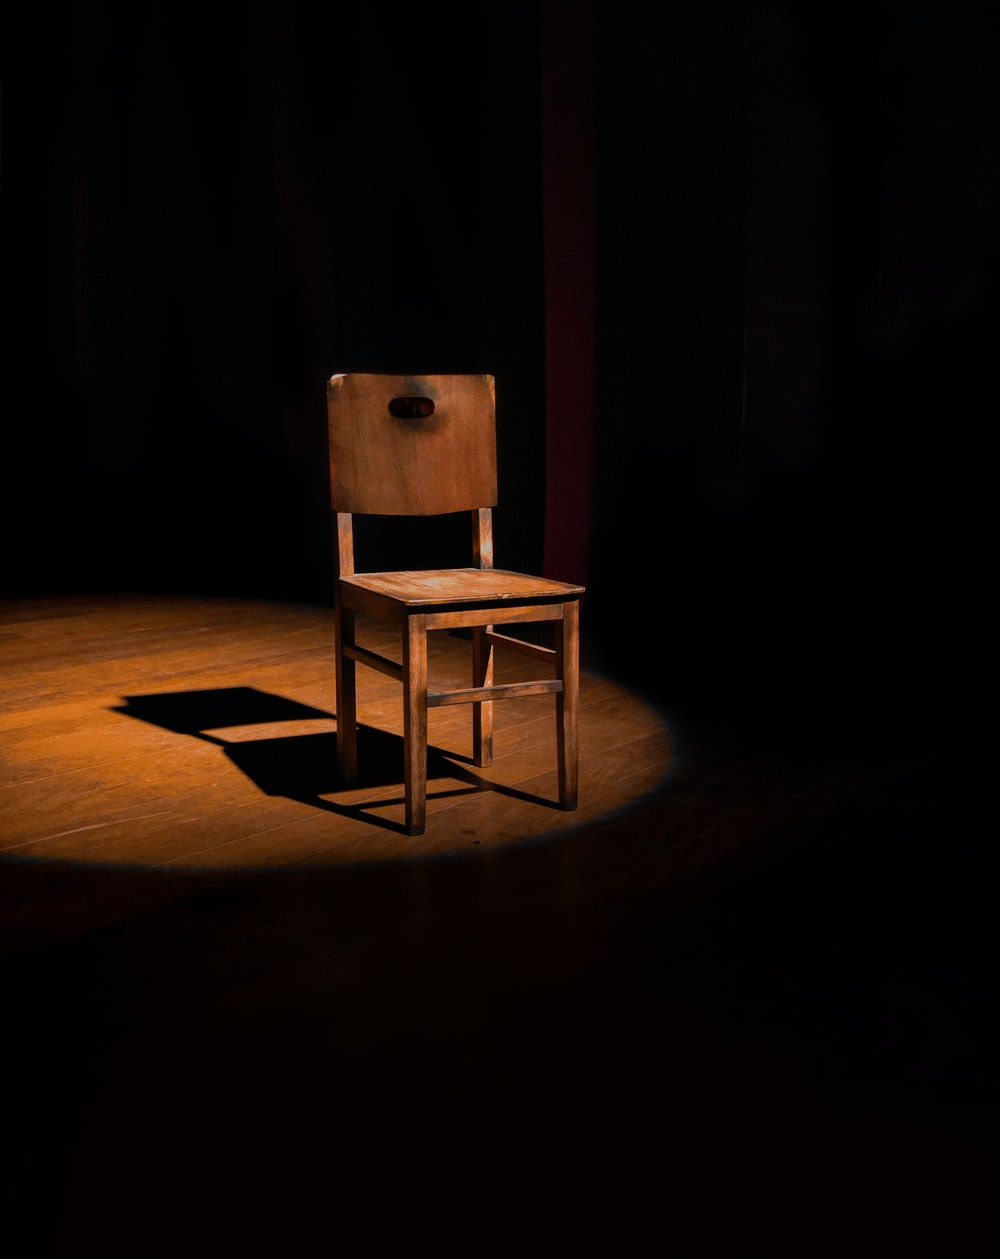 vacant brown wooden armless chair